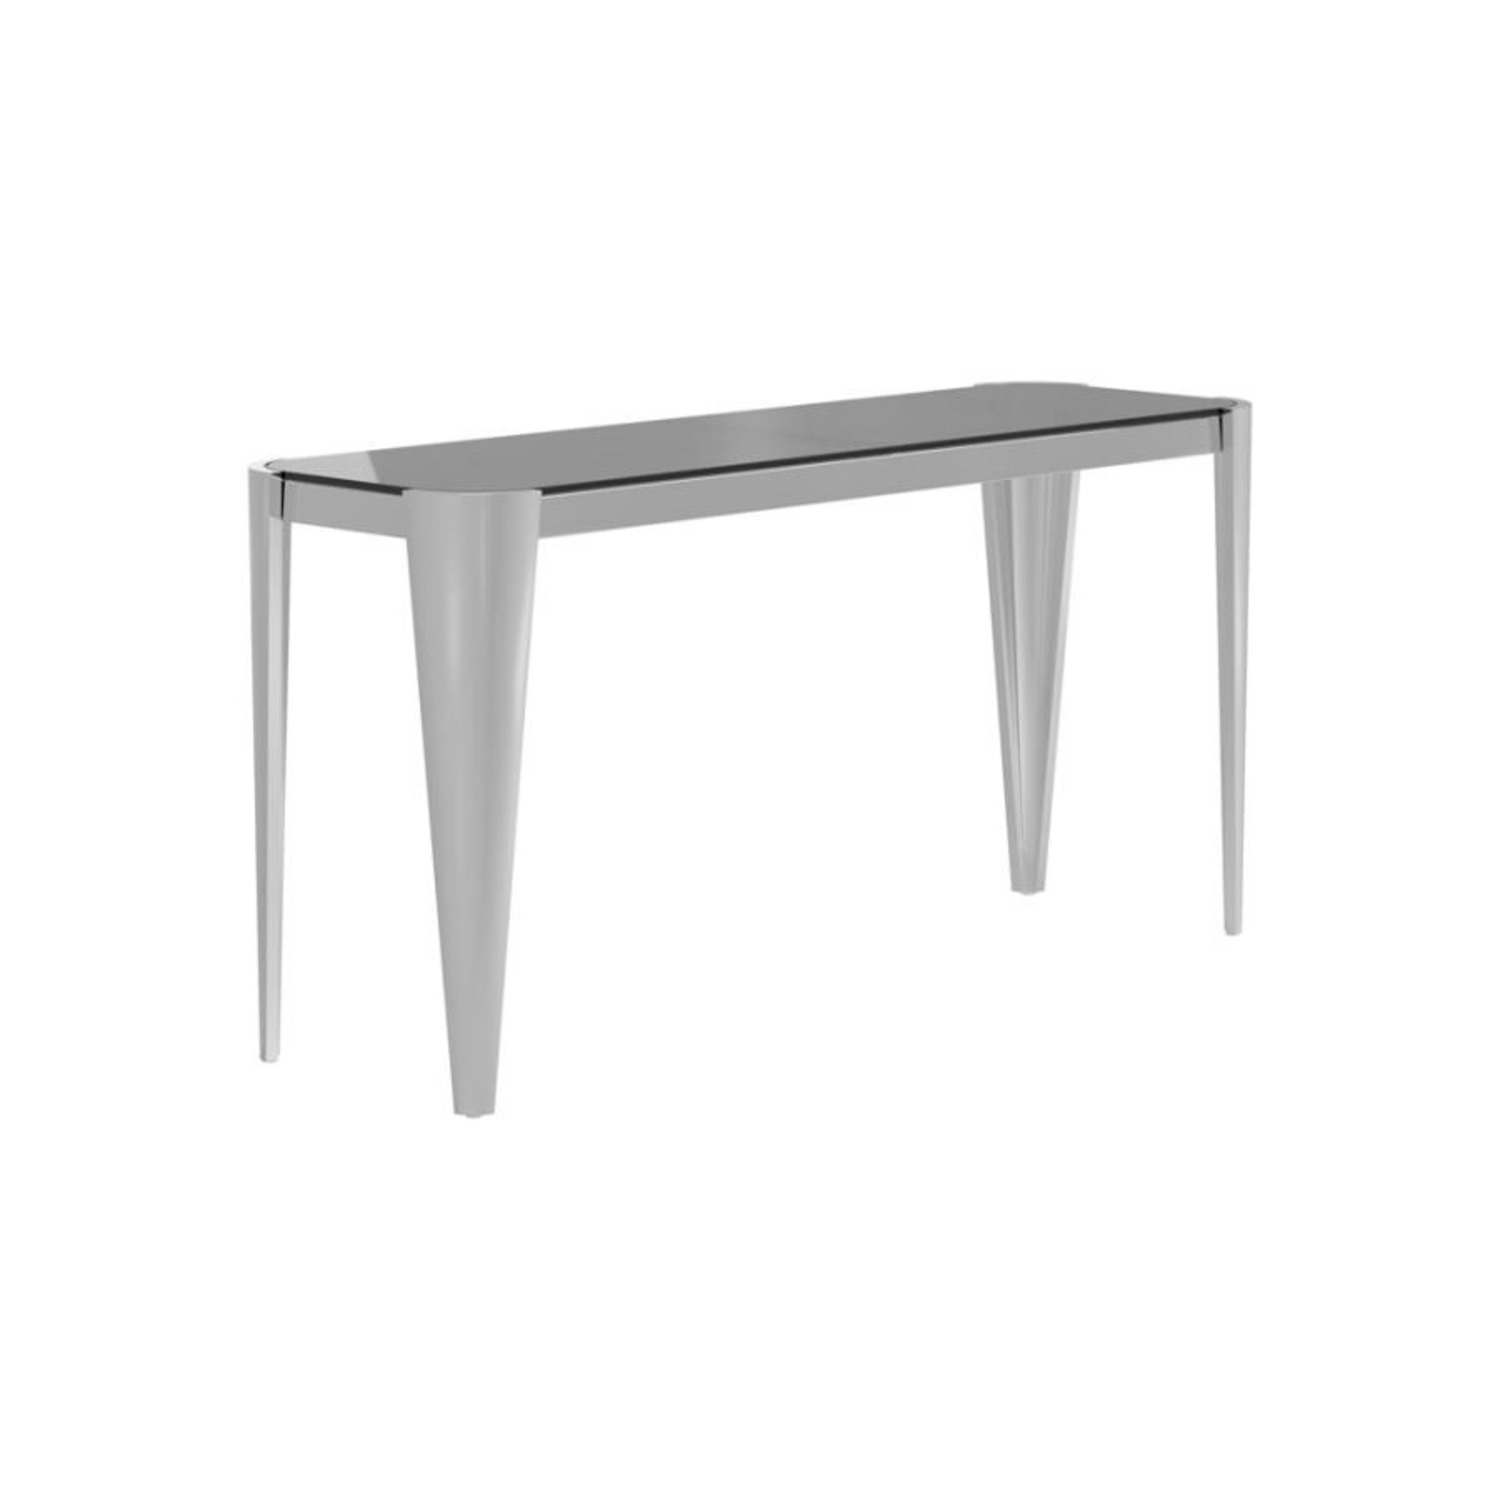 Sofa Table In Silver W/ Grey Tempered Glass Top - image-0